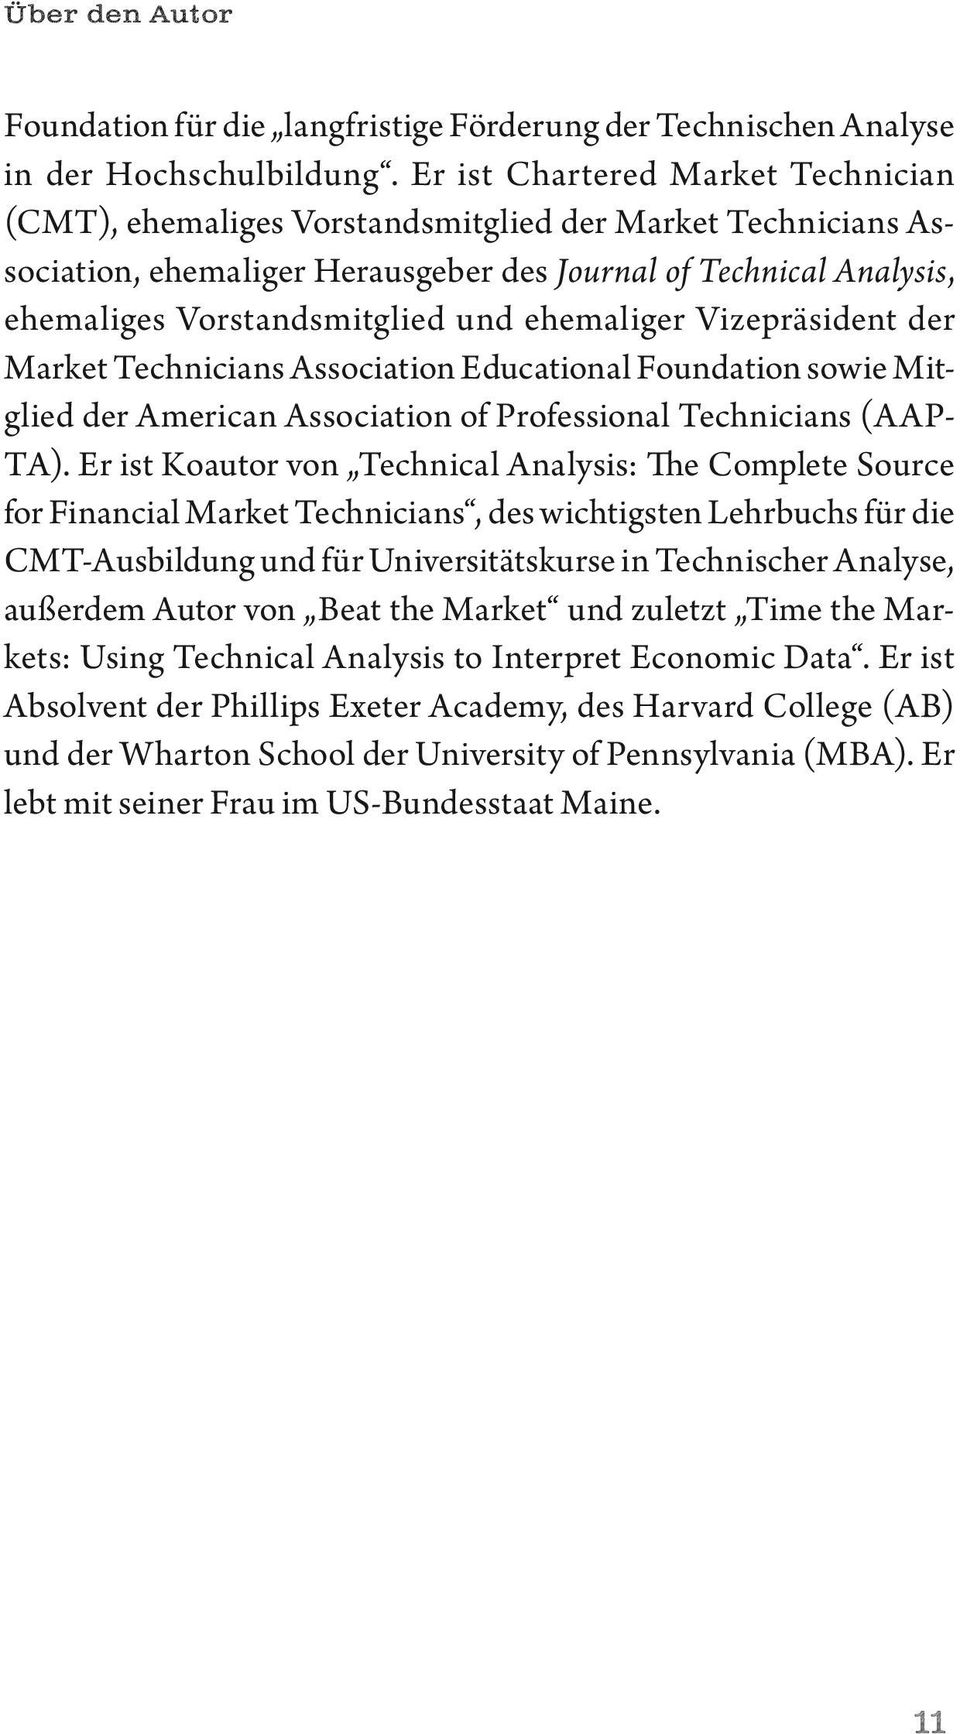 ehemaliger vizepräsident der market Technicians Association Educational Foundation sowie mitglied der American Association of professional Technicians (AAp- TA).